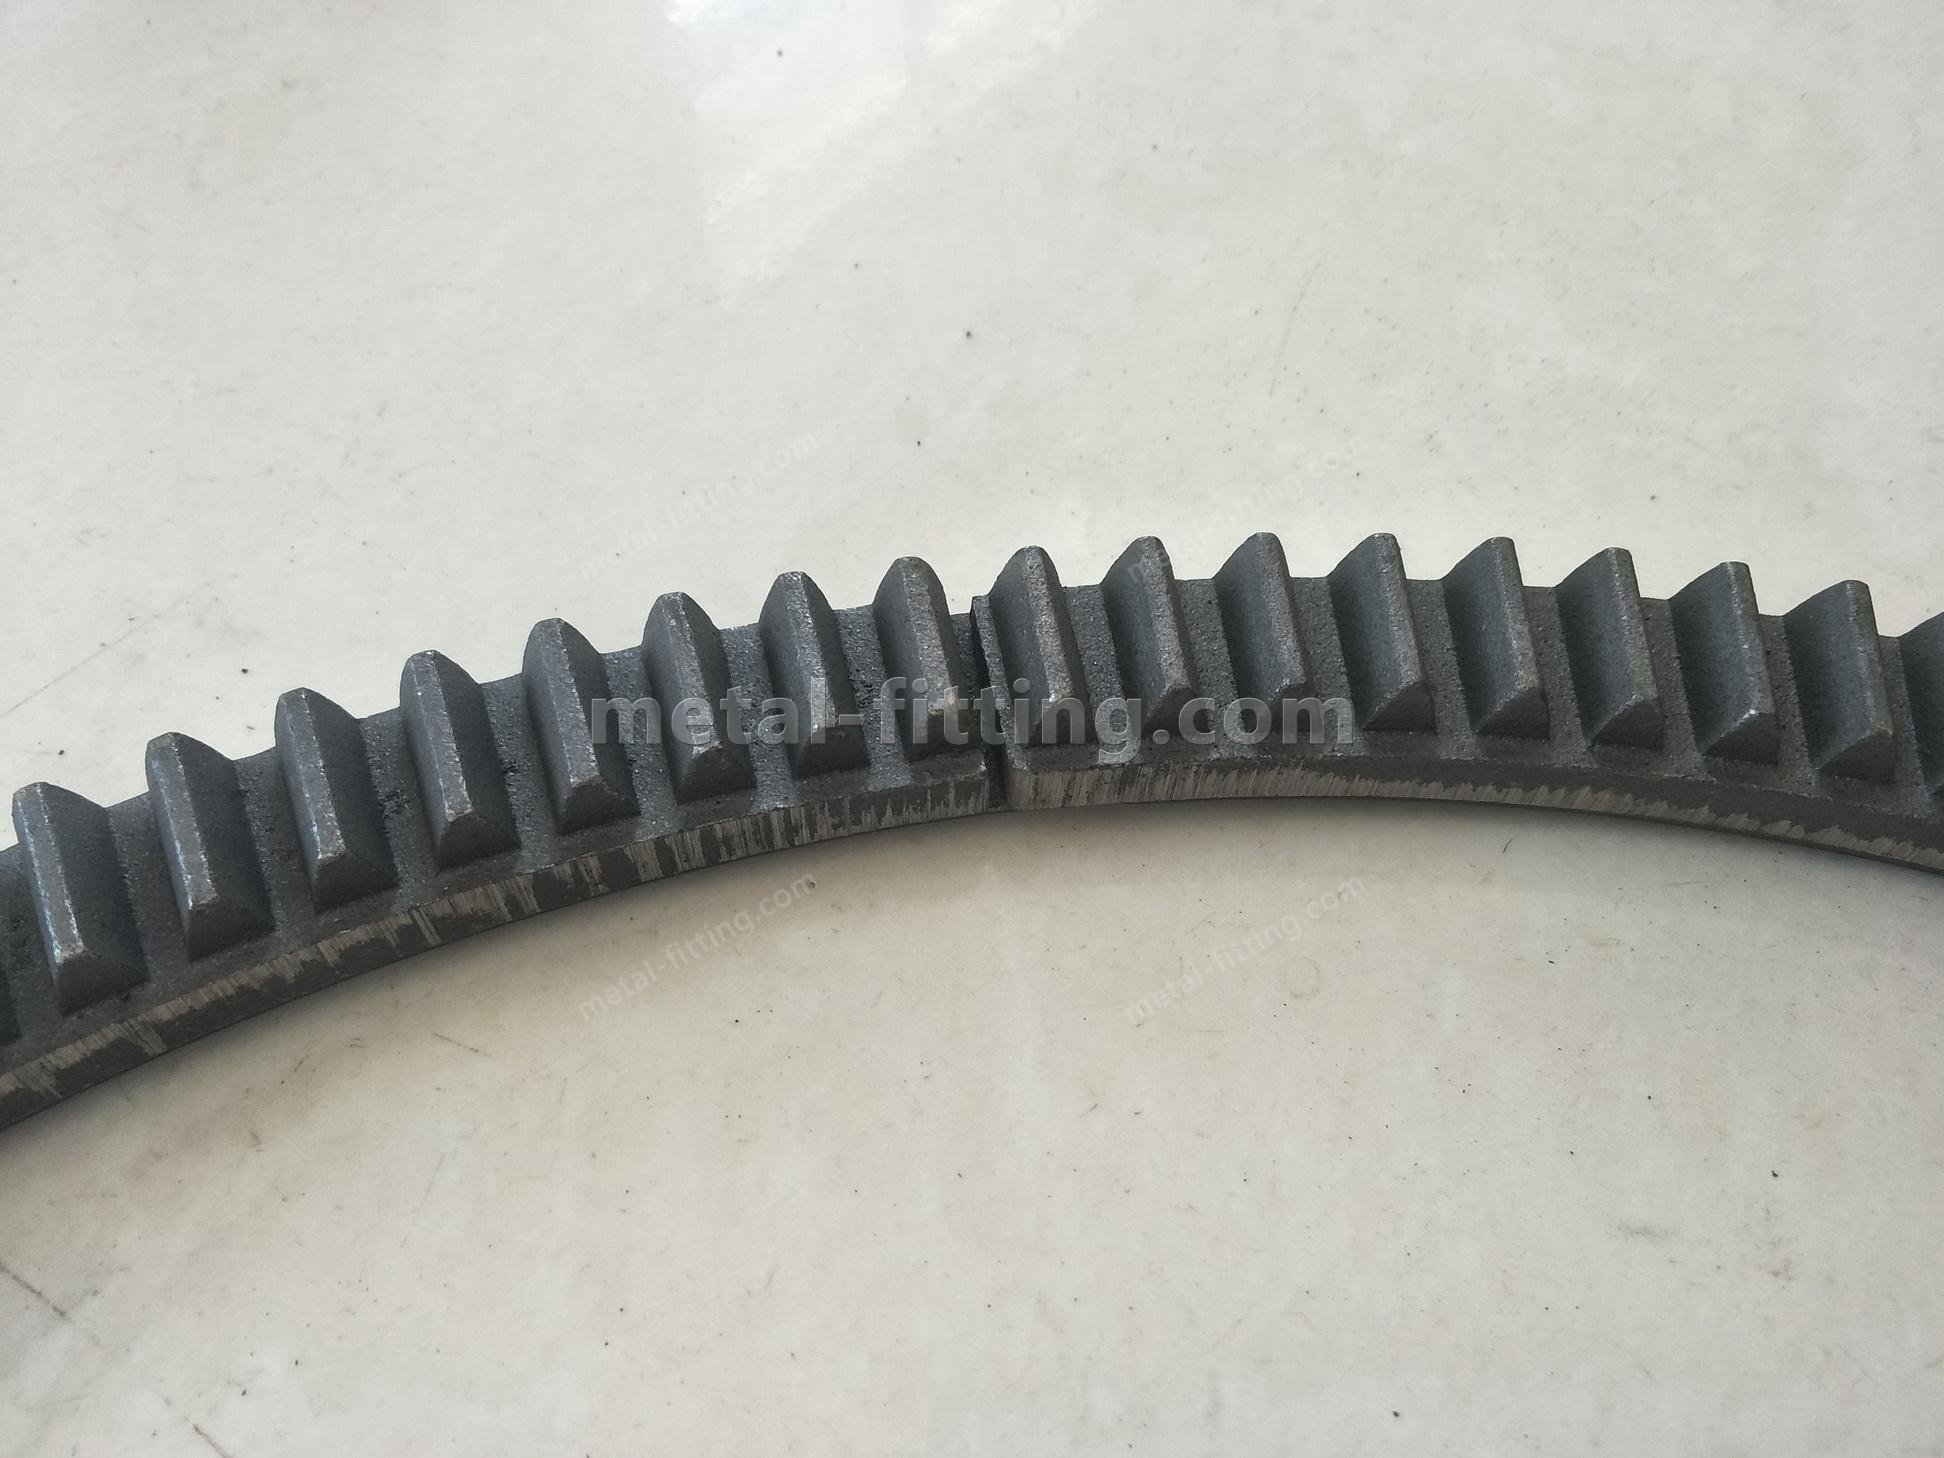 cement mixer cast iron ring gear,metal concrete mixer gear and pinion set ,spinning gear ring-cast mixer ring gear (7)